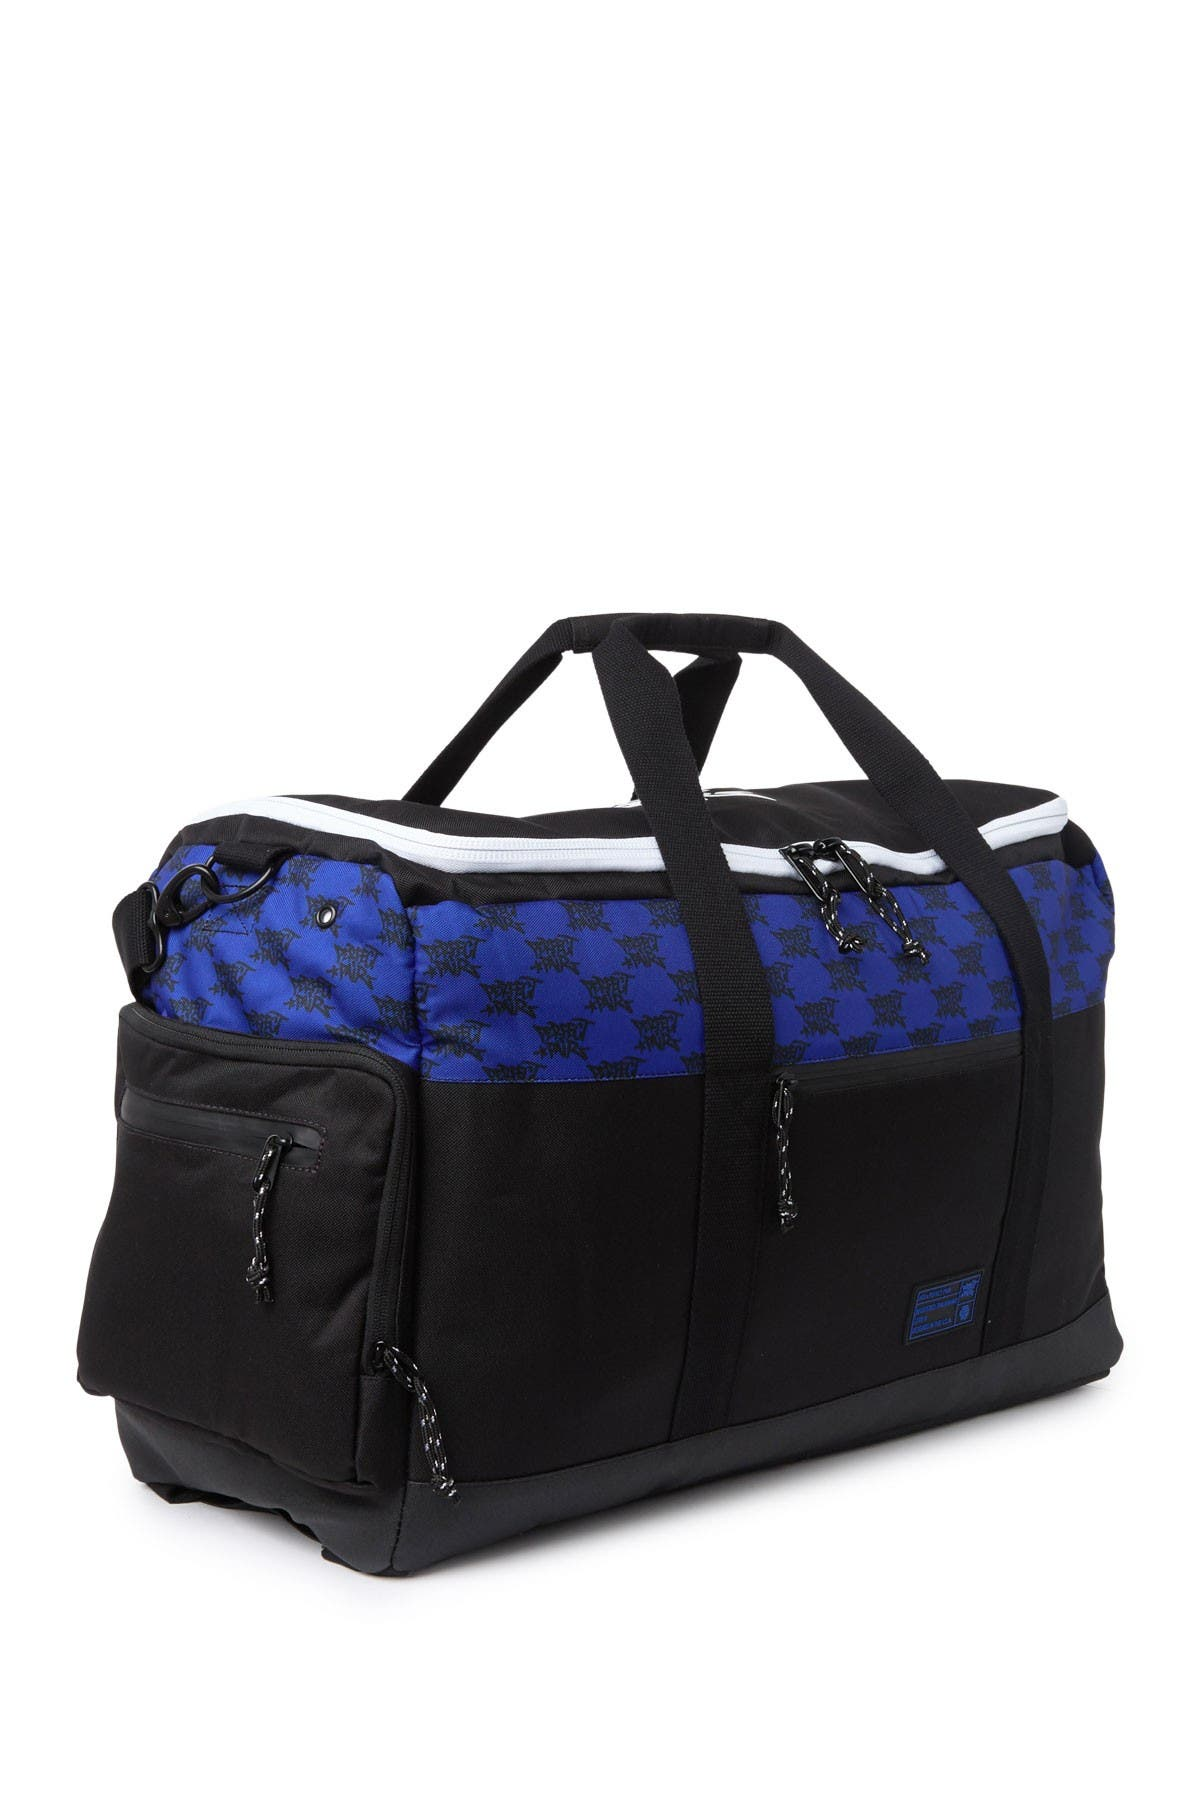 Image of Hex Accessories Hex x Perfect Pair Sneaker Duffel Bag